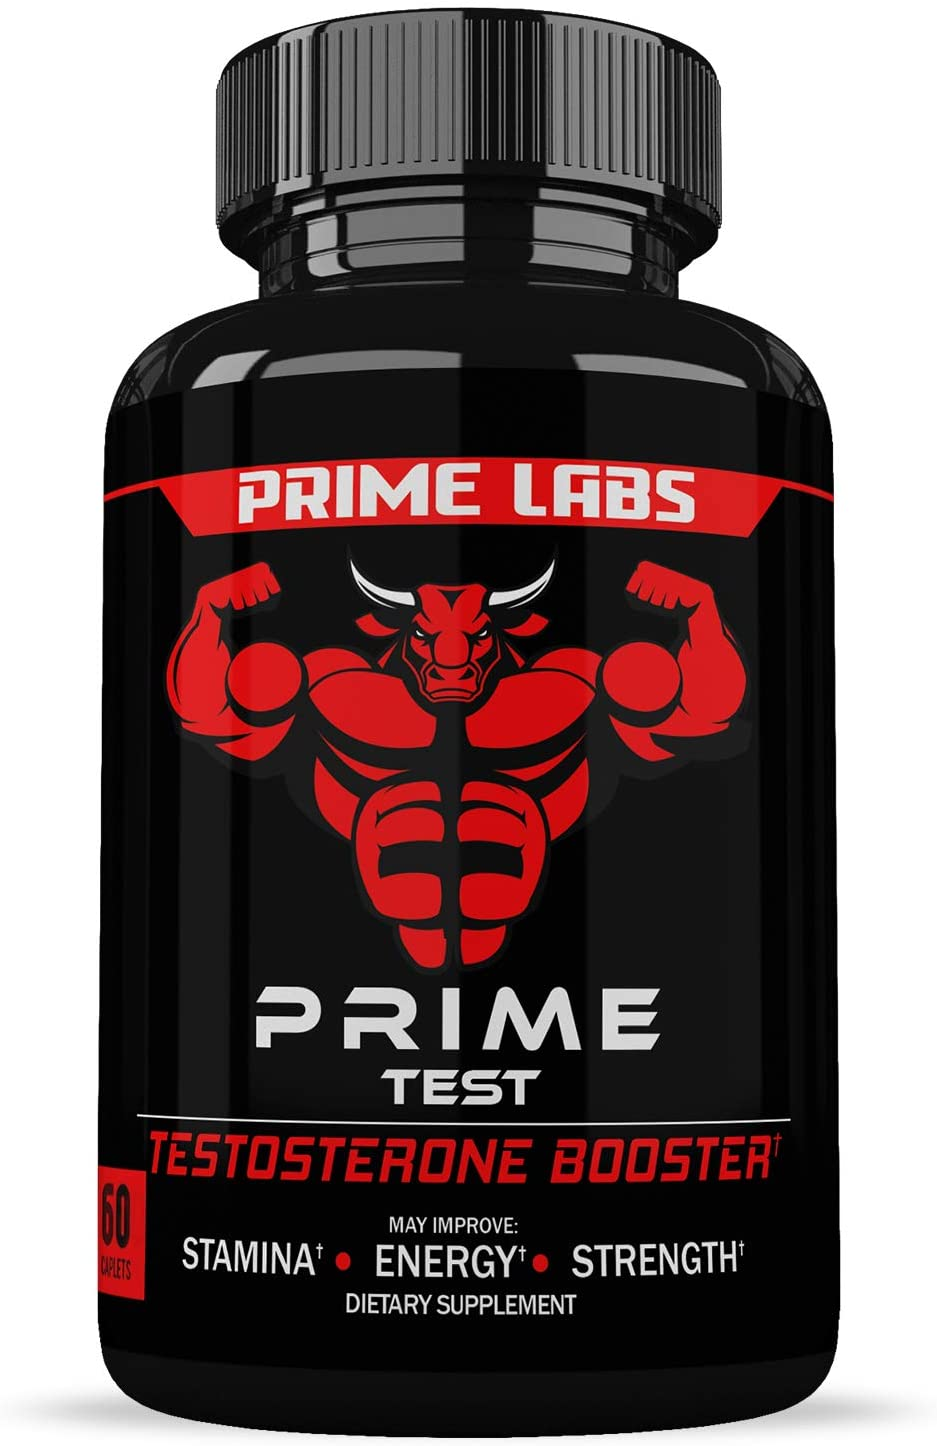 Prime Labs - Men's Test Booster - 60 Tablet